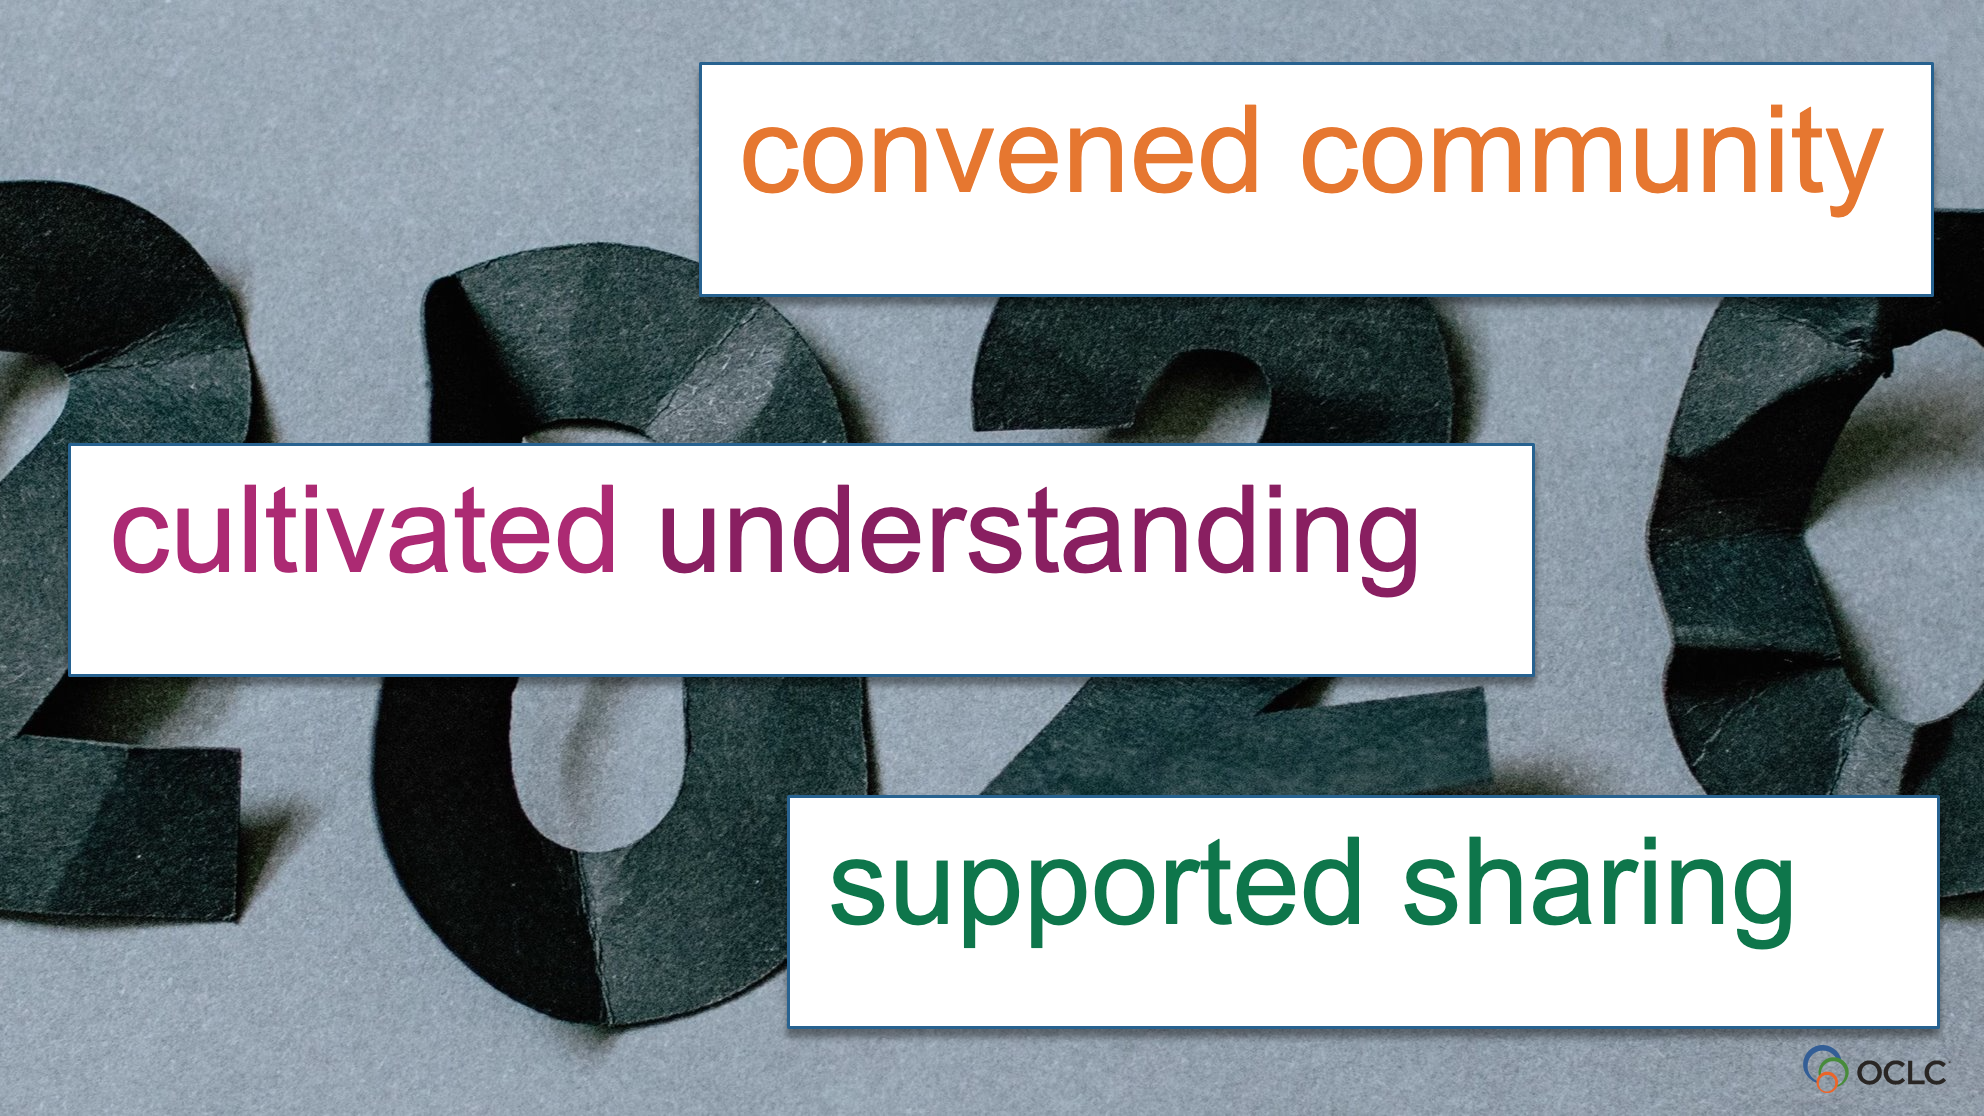 OCLC Research Update: Convening, understanding, and sharing